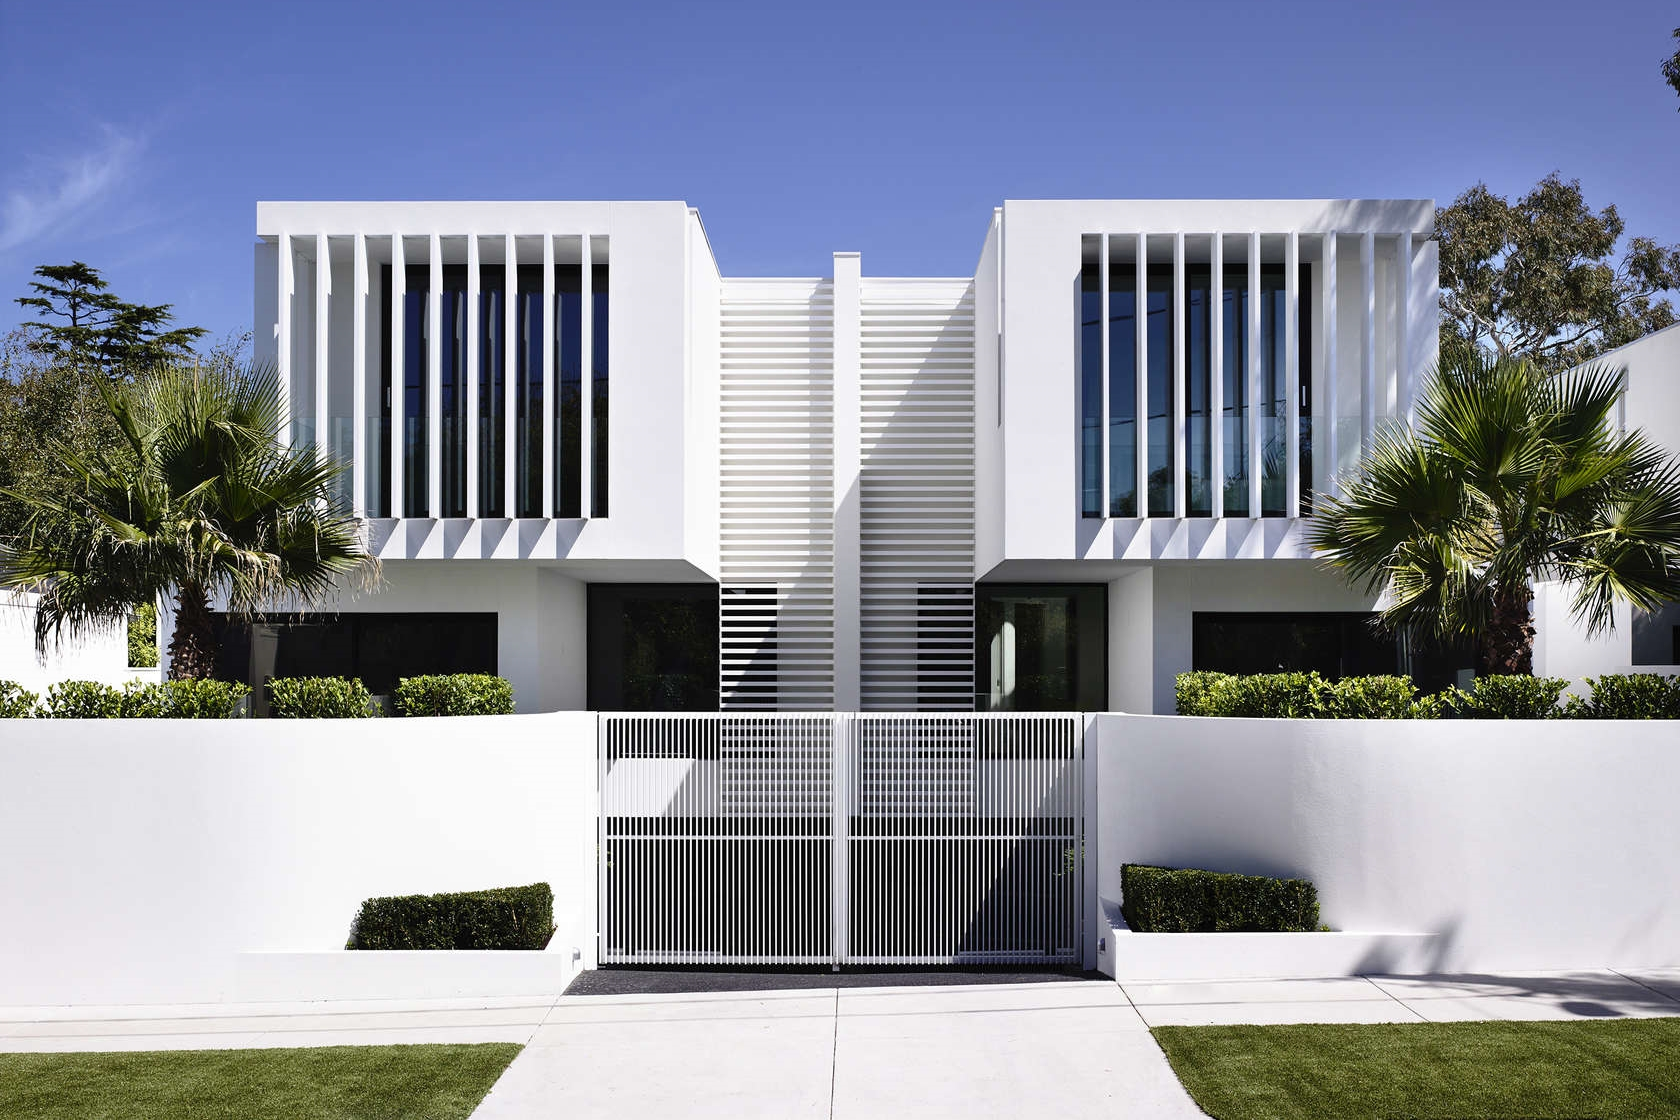 Top 50 Modern House Designs Ever Built! - Architecture Beast on Modern House Ideas  id=62257